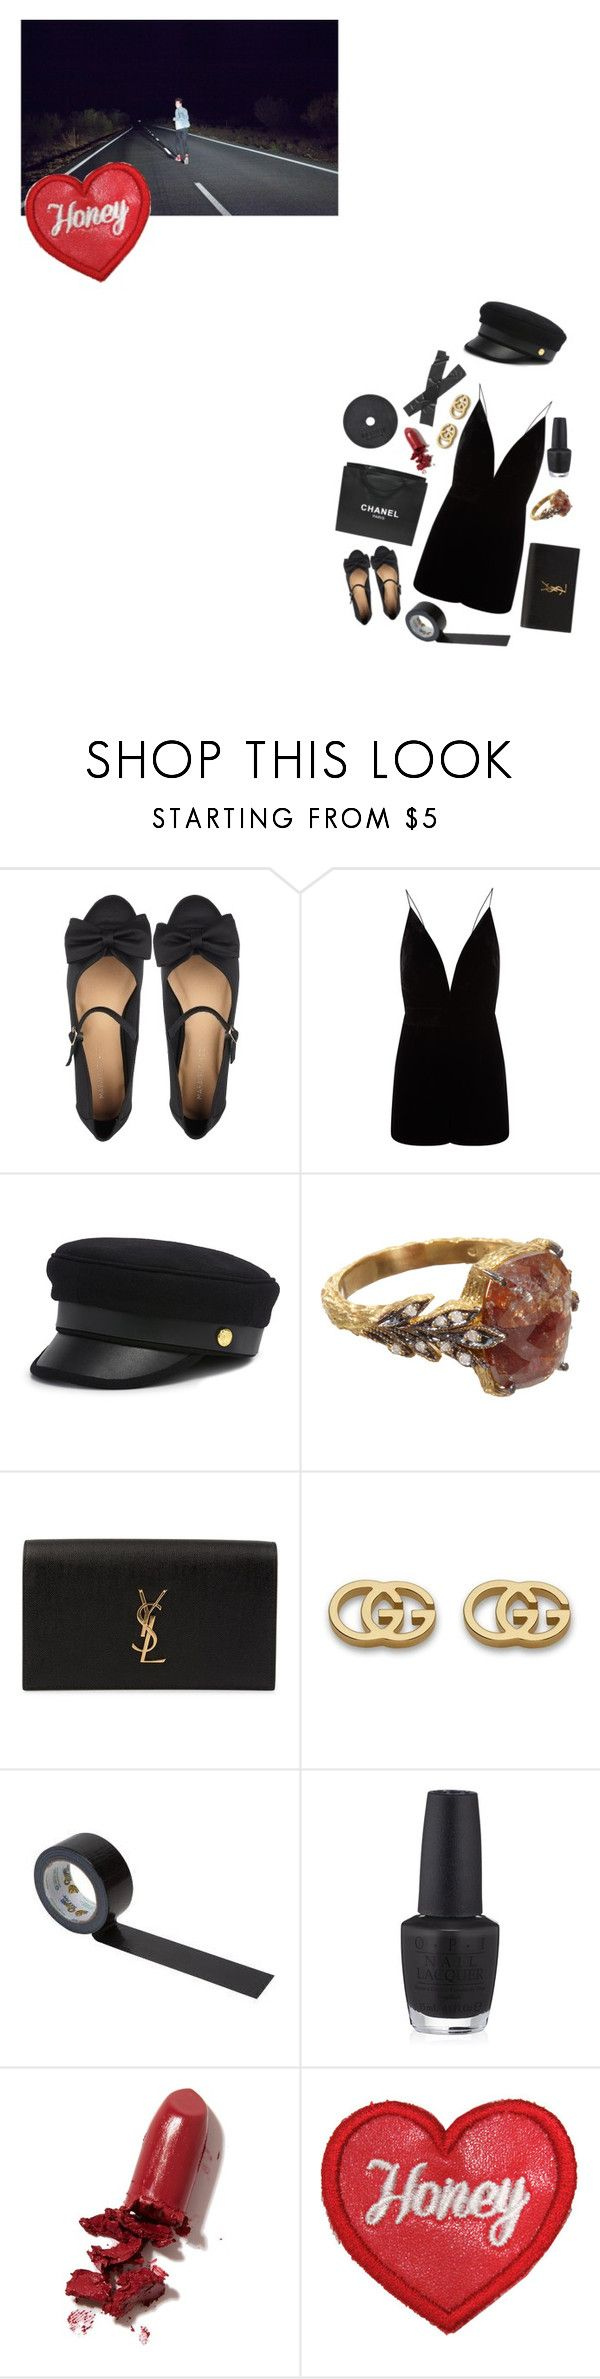 """These four walls"" by isobelle206 ❤ liked on Polyvore featuring Marais USA, La Mania, Henri Bendel, Chanel, Cathy Waterman, Yves Saint Laurent, Gucci, OPI and LAQA & Co."